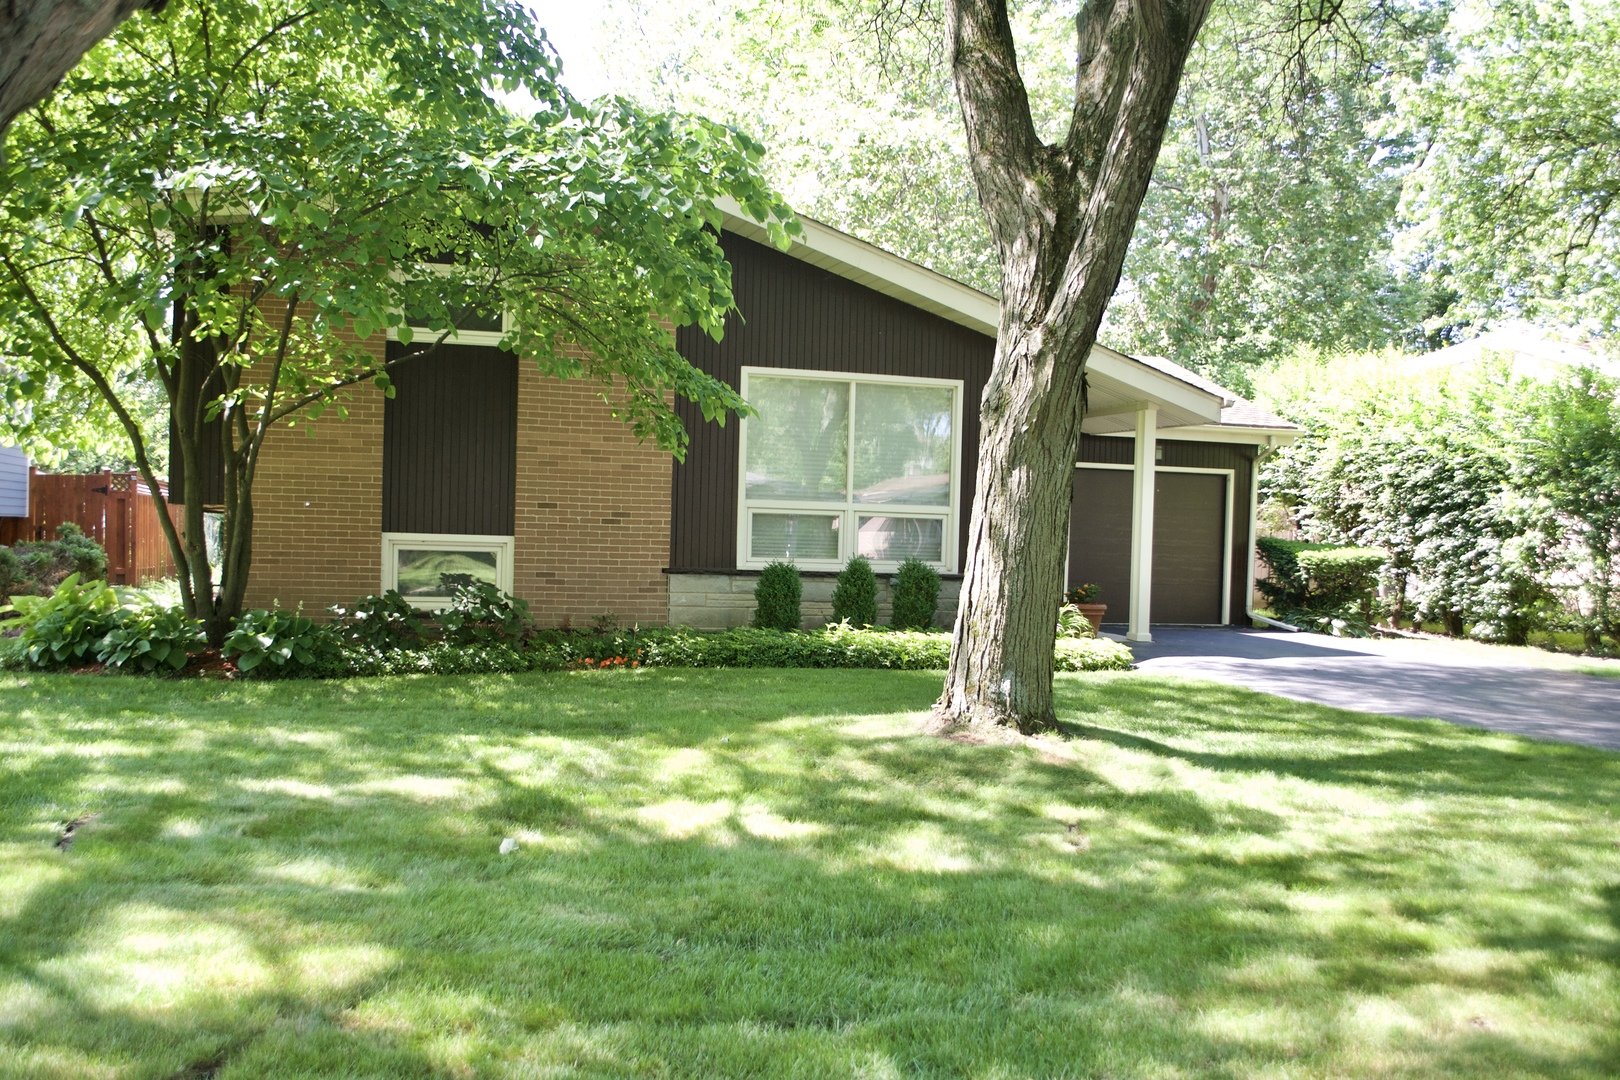 229 Southgate Drive, Northbrook in Cook County, IL 60062 Home for Sale